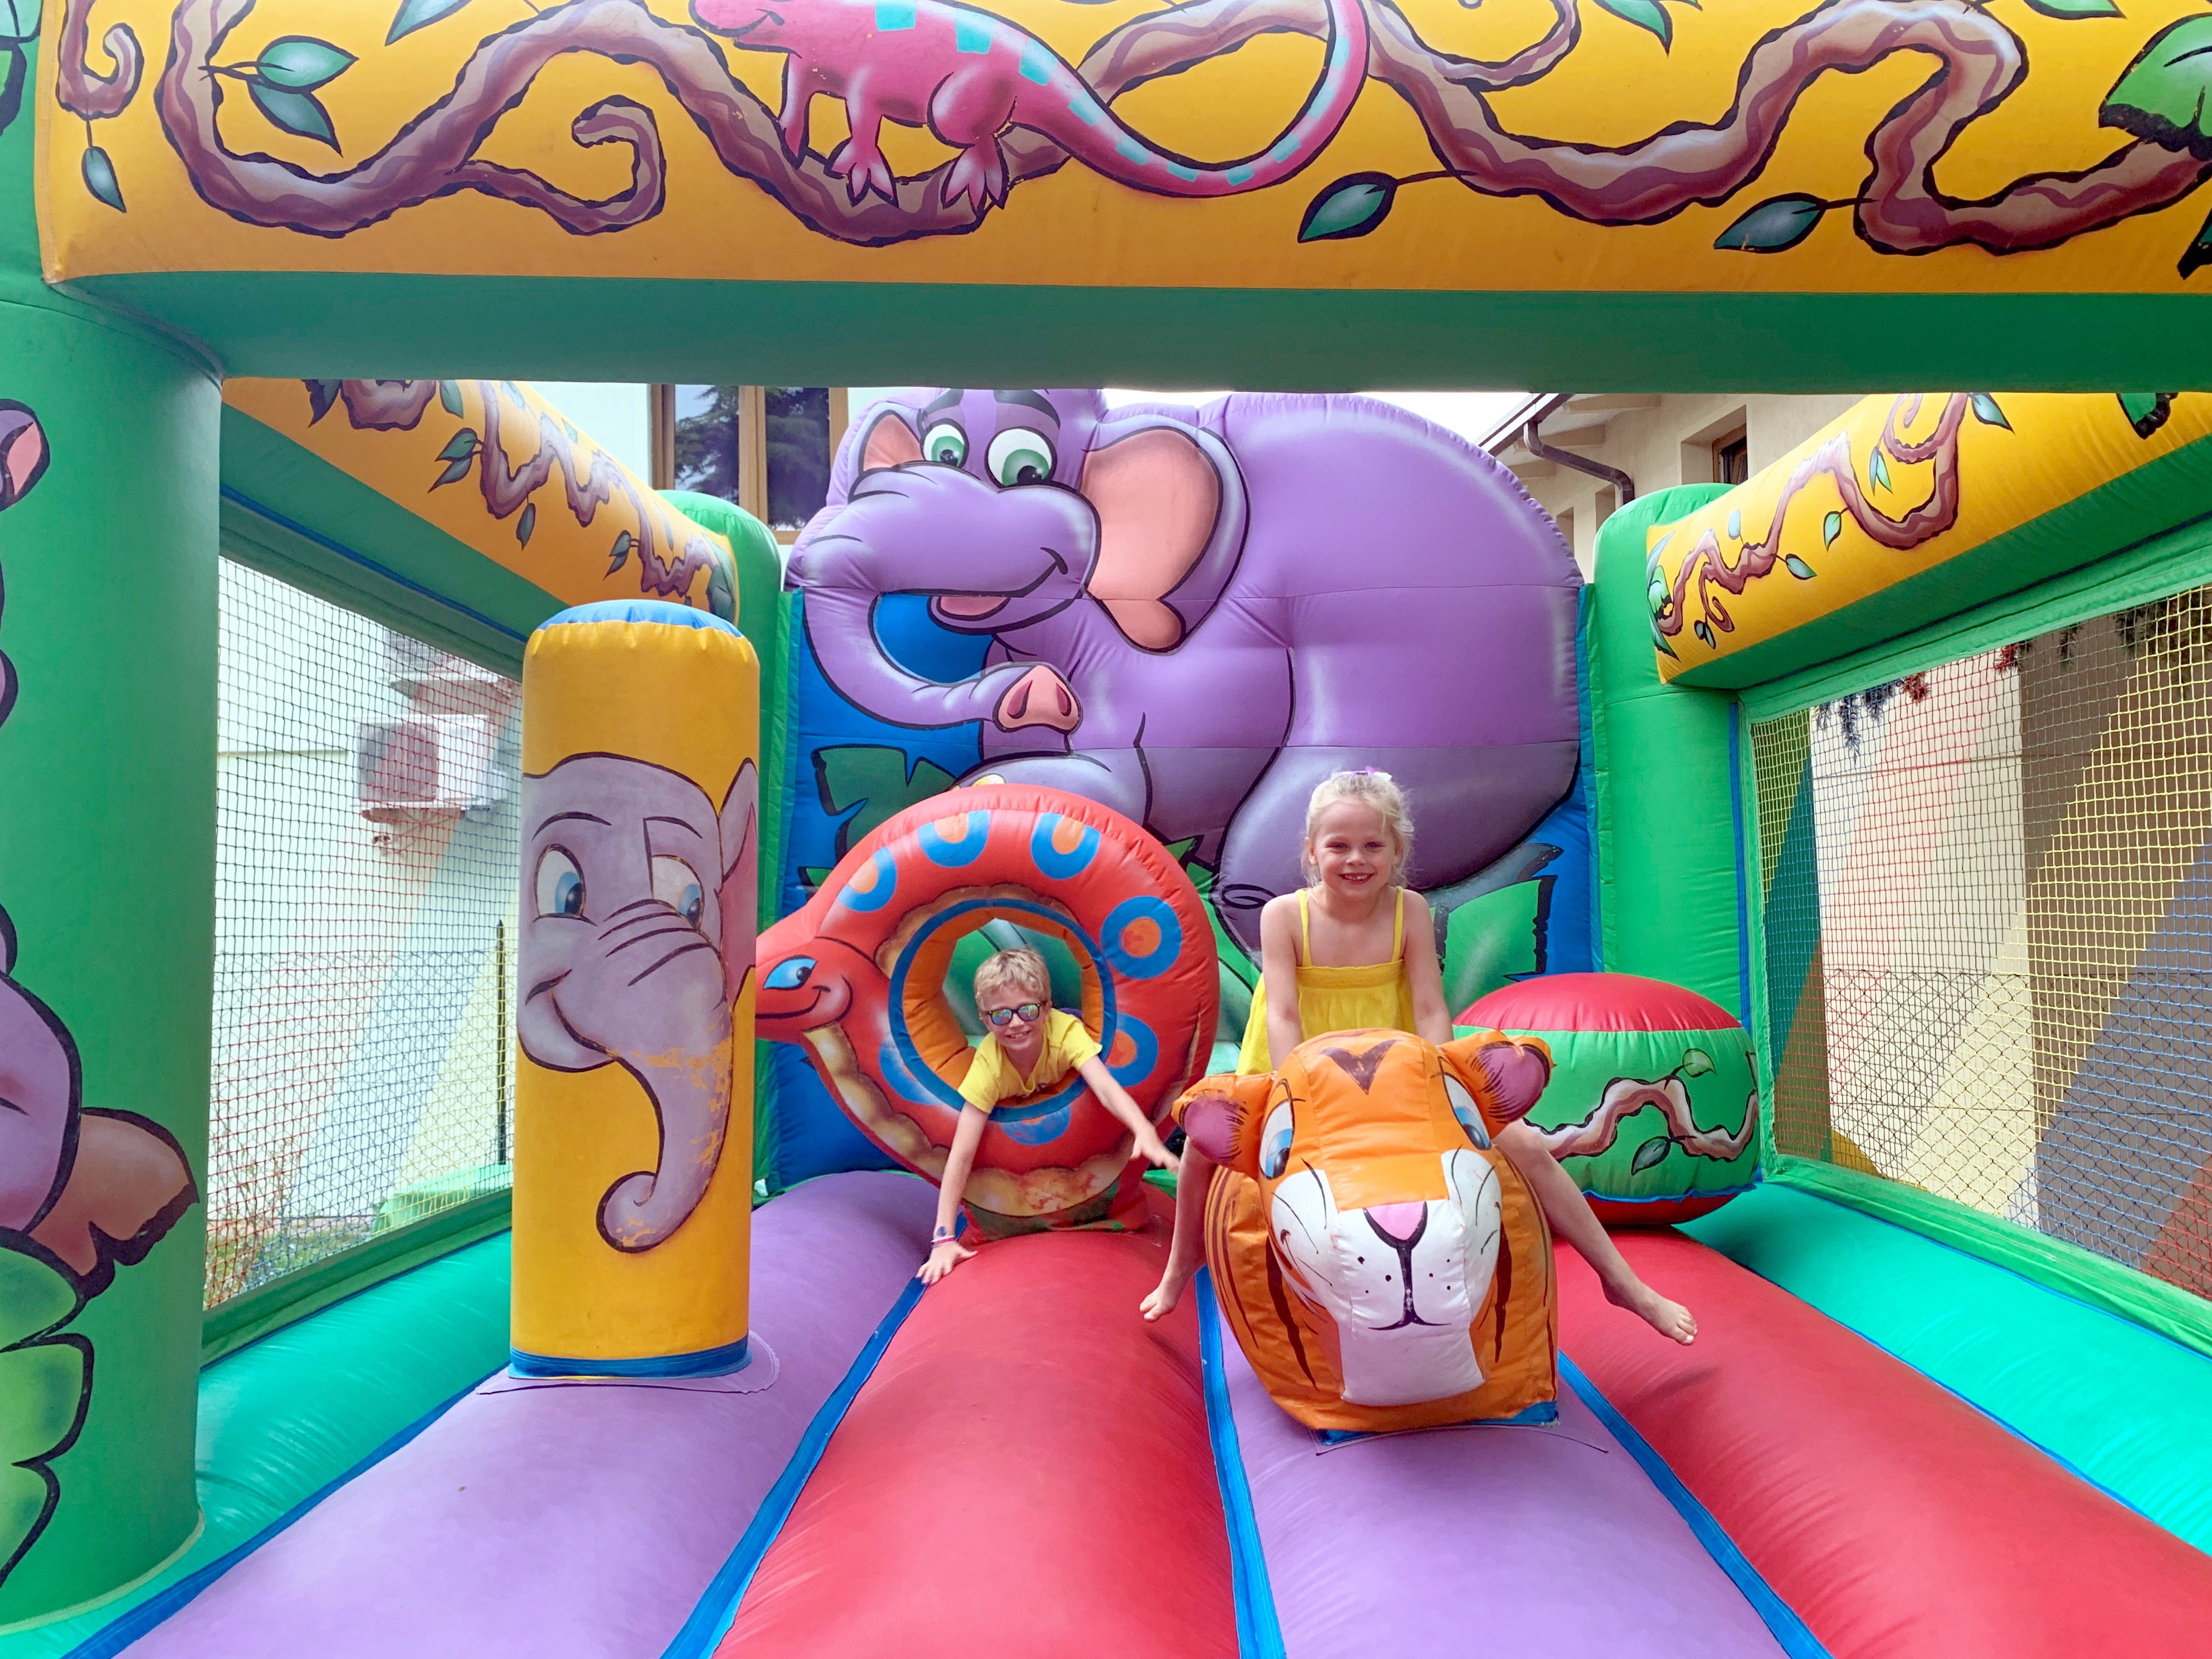 2 children playing on a bouncy castle with a jungle and elephant theme